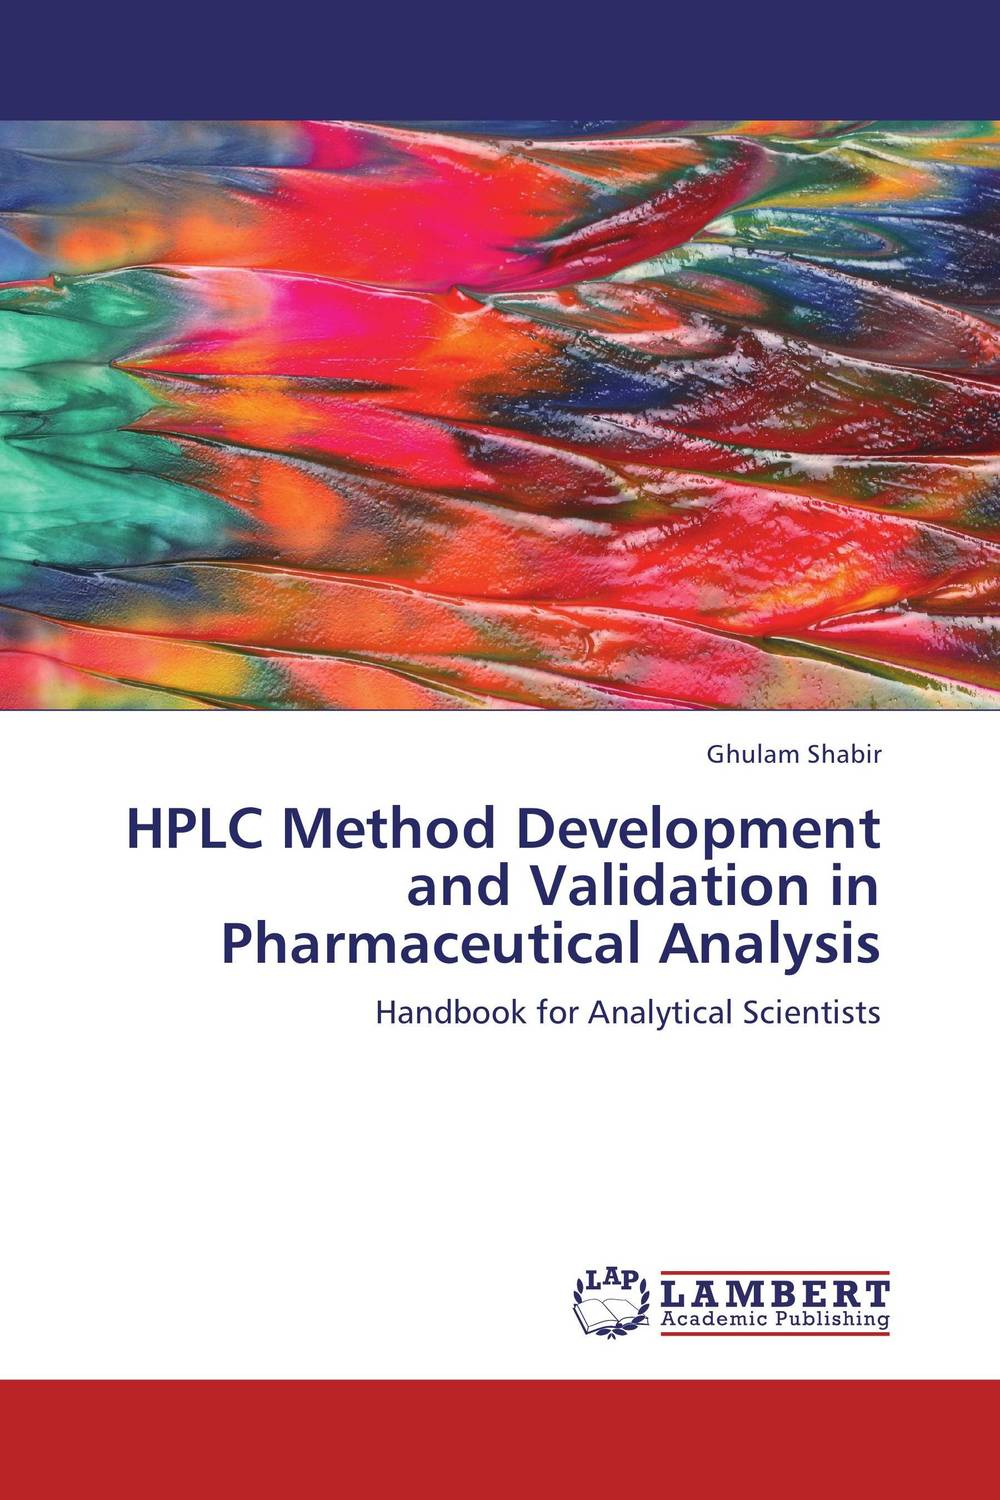 HPLC Method Development and Validation in Pharmaceutical Analysis буддийский сувенир sheng good research and development ssyf a19 10